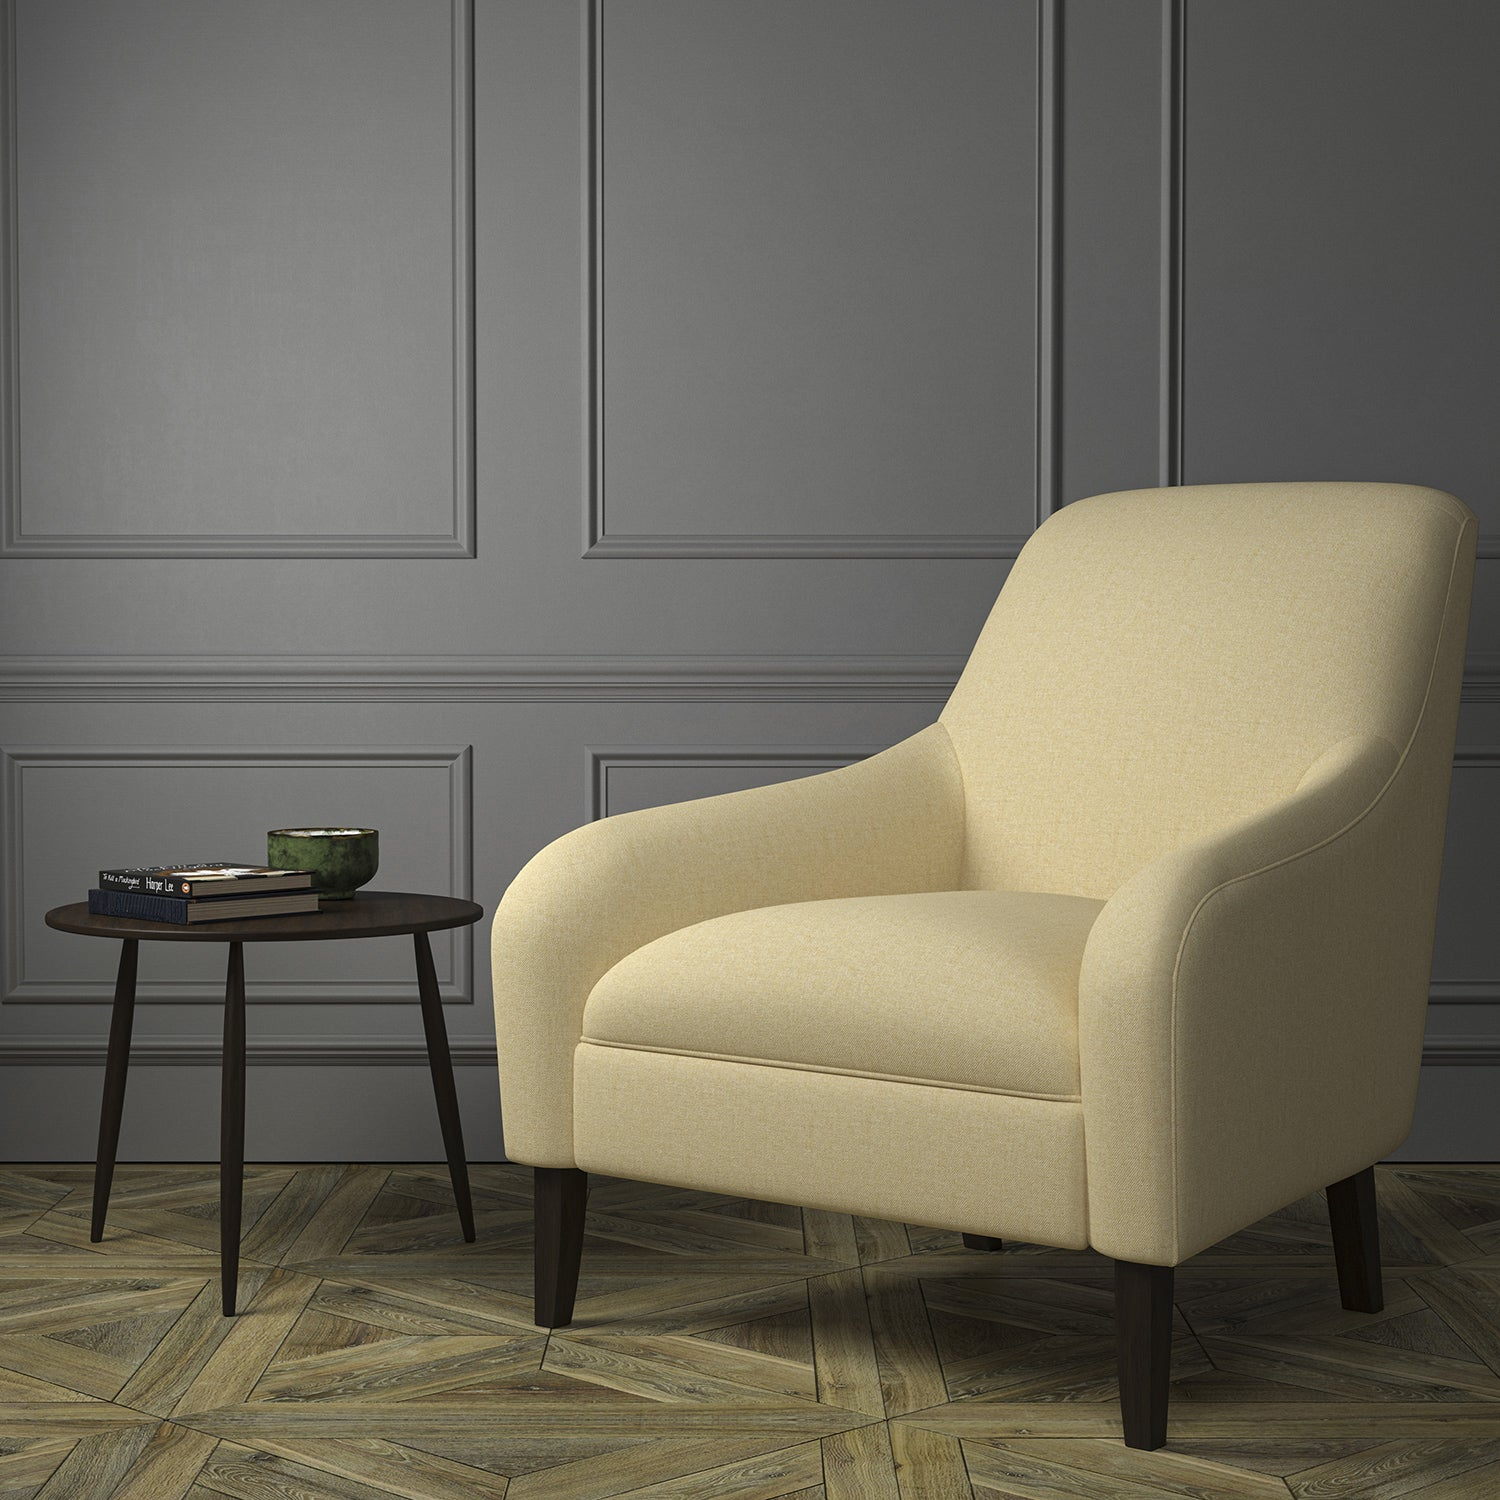 Chair upholstered in a luxury Scottish plain cream wool upholstery fabric